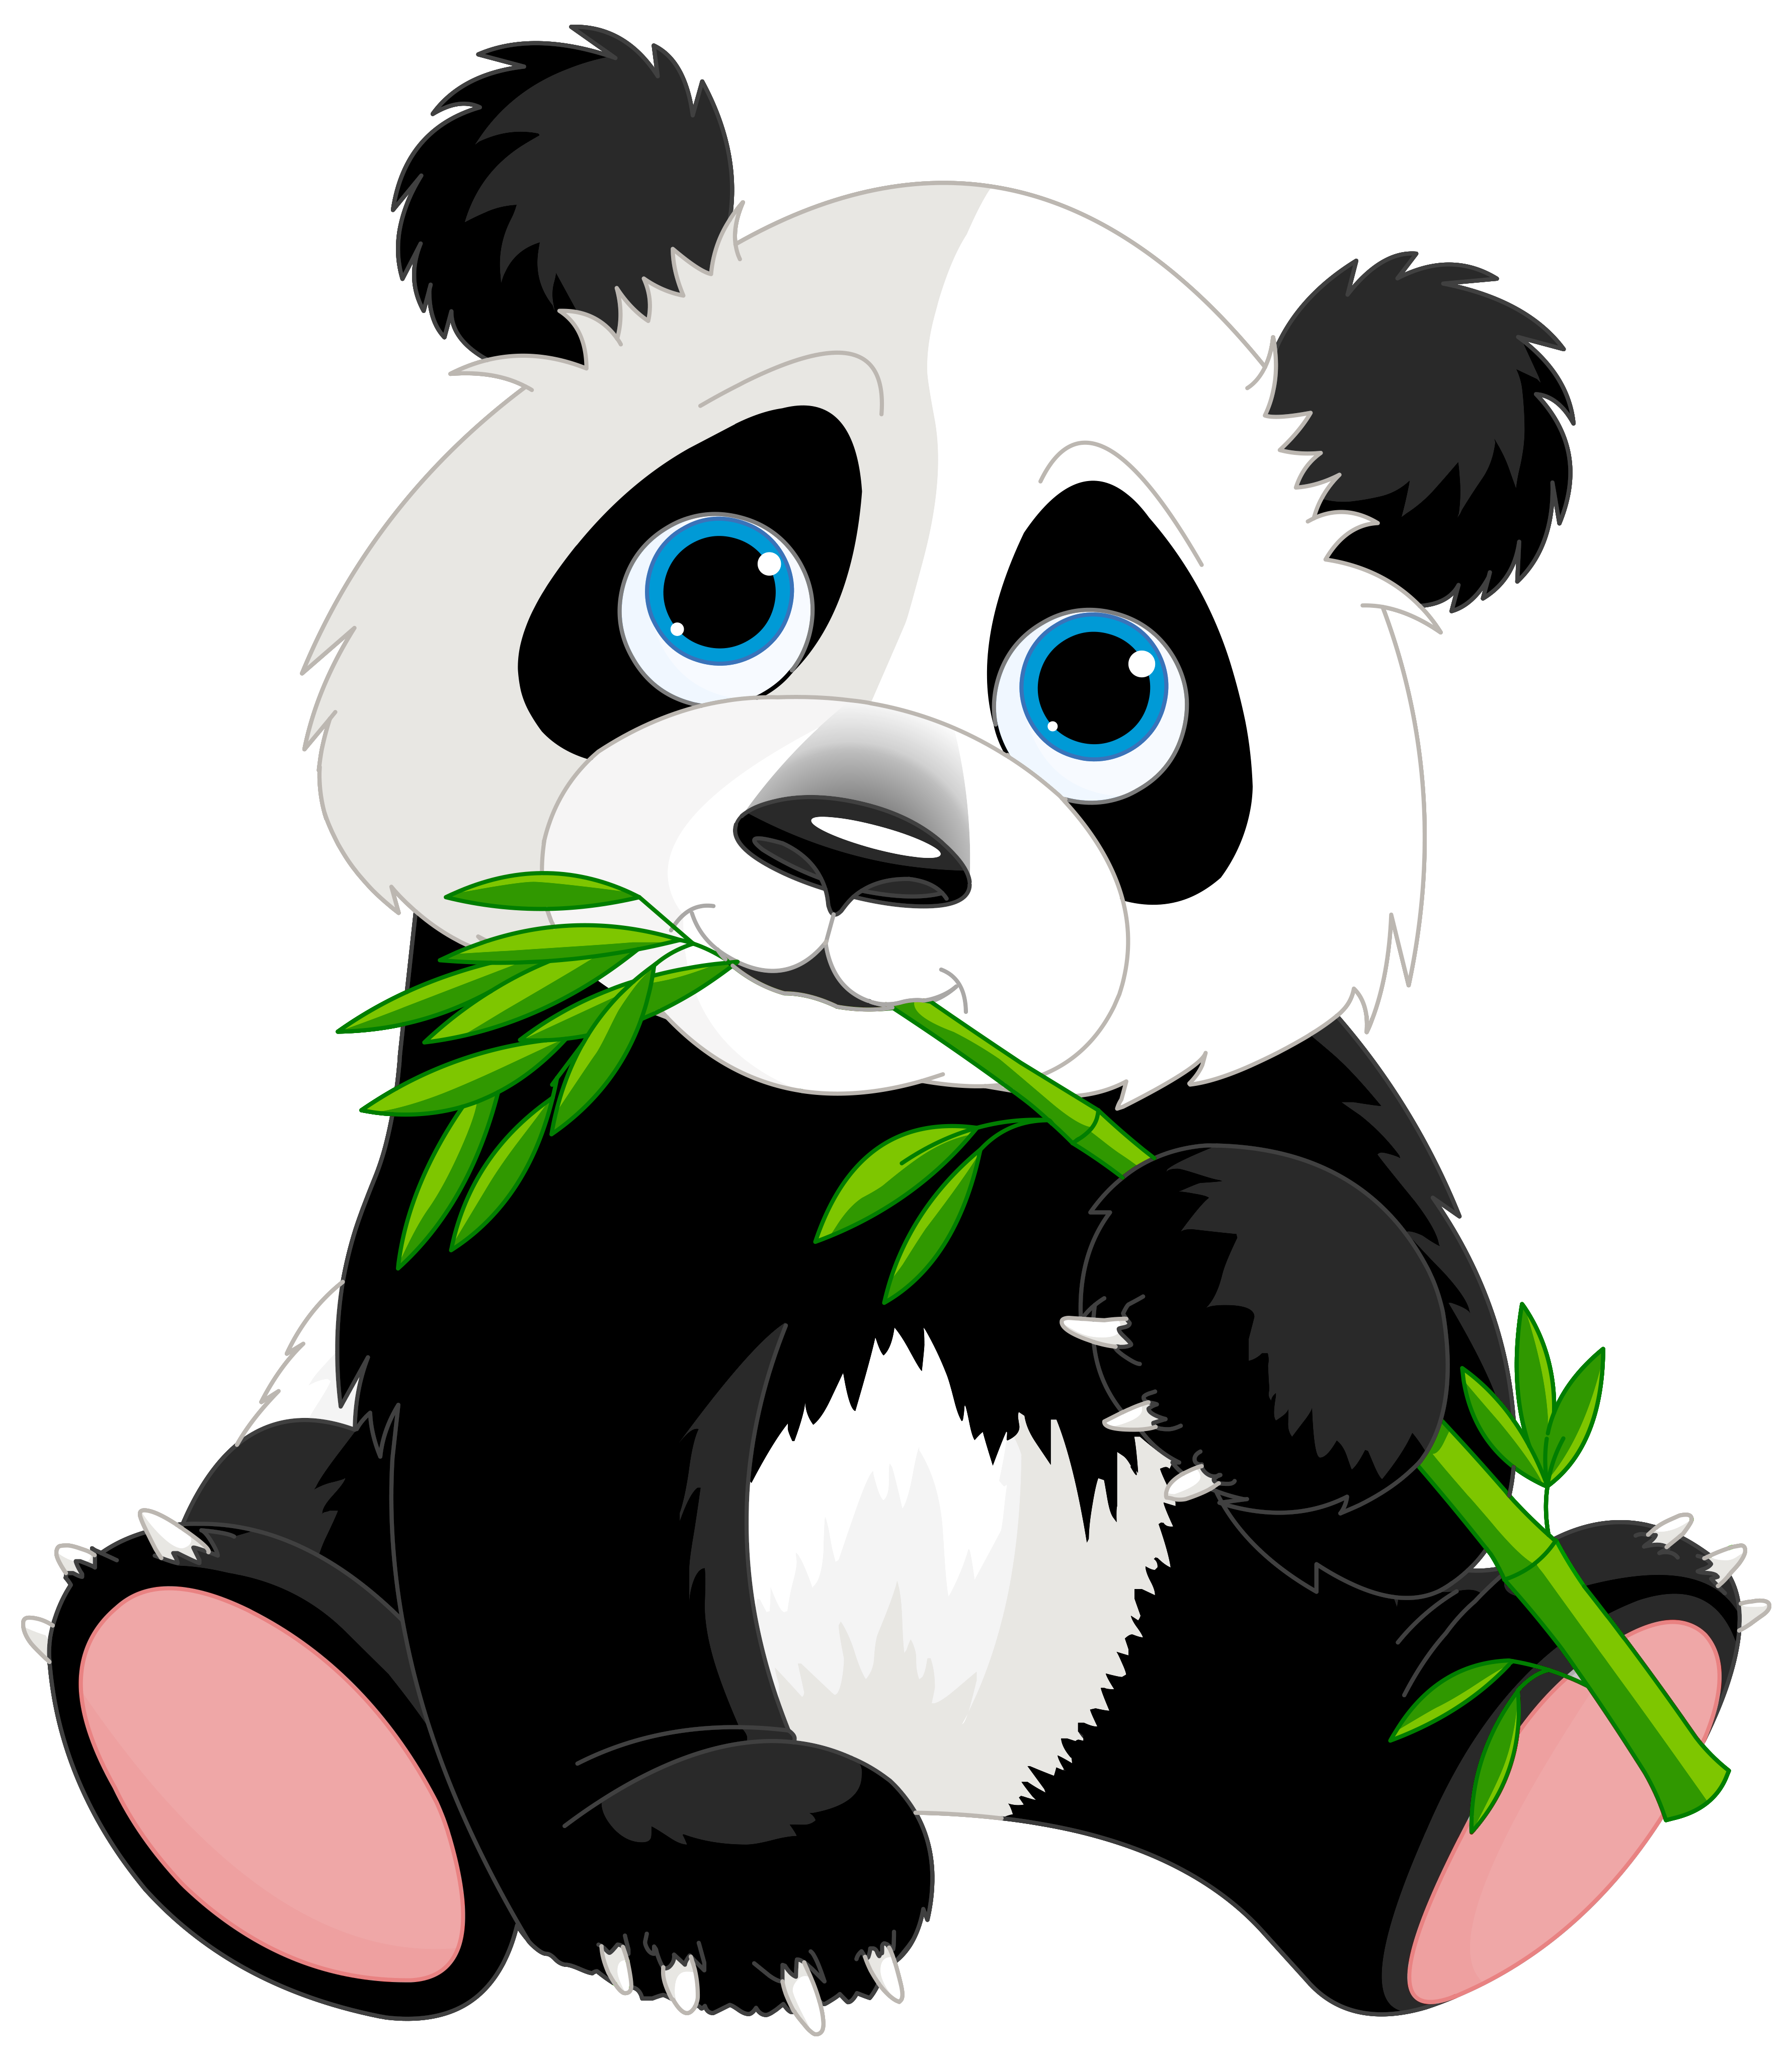 graphic black and white stock Panda png clipart image. Bamboo transparent cute cartoon